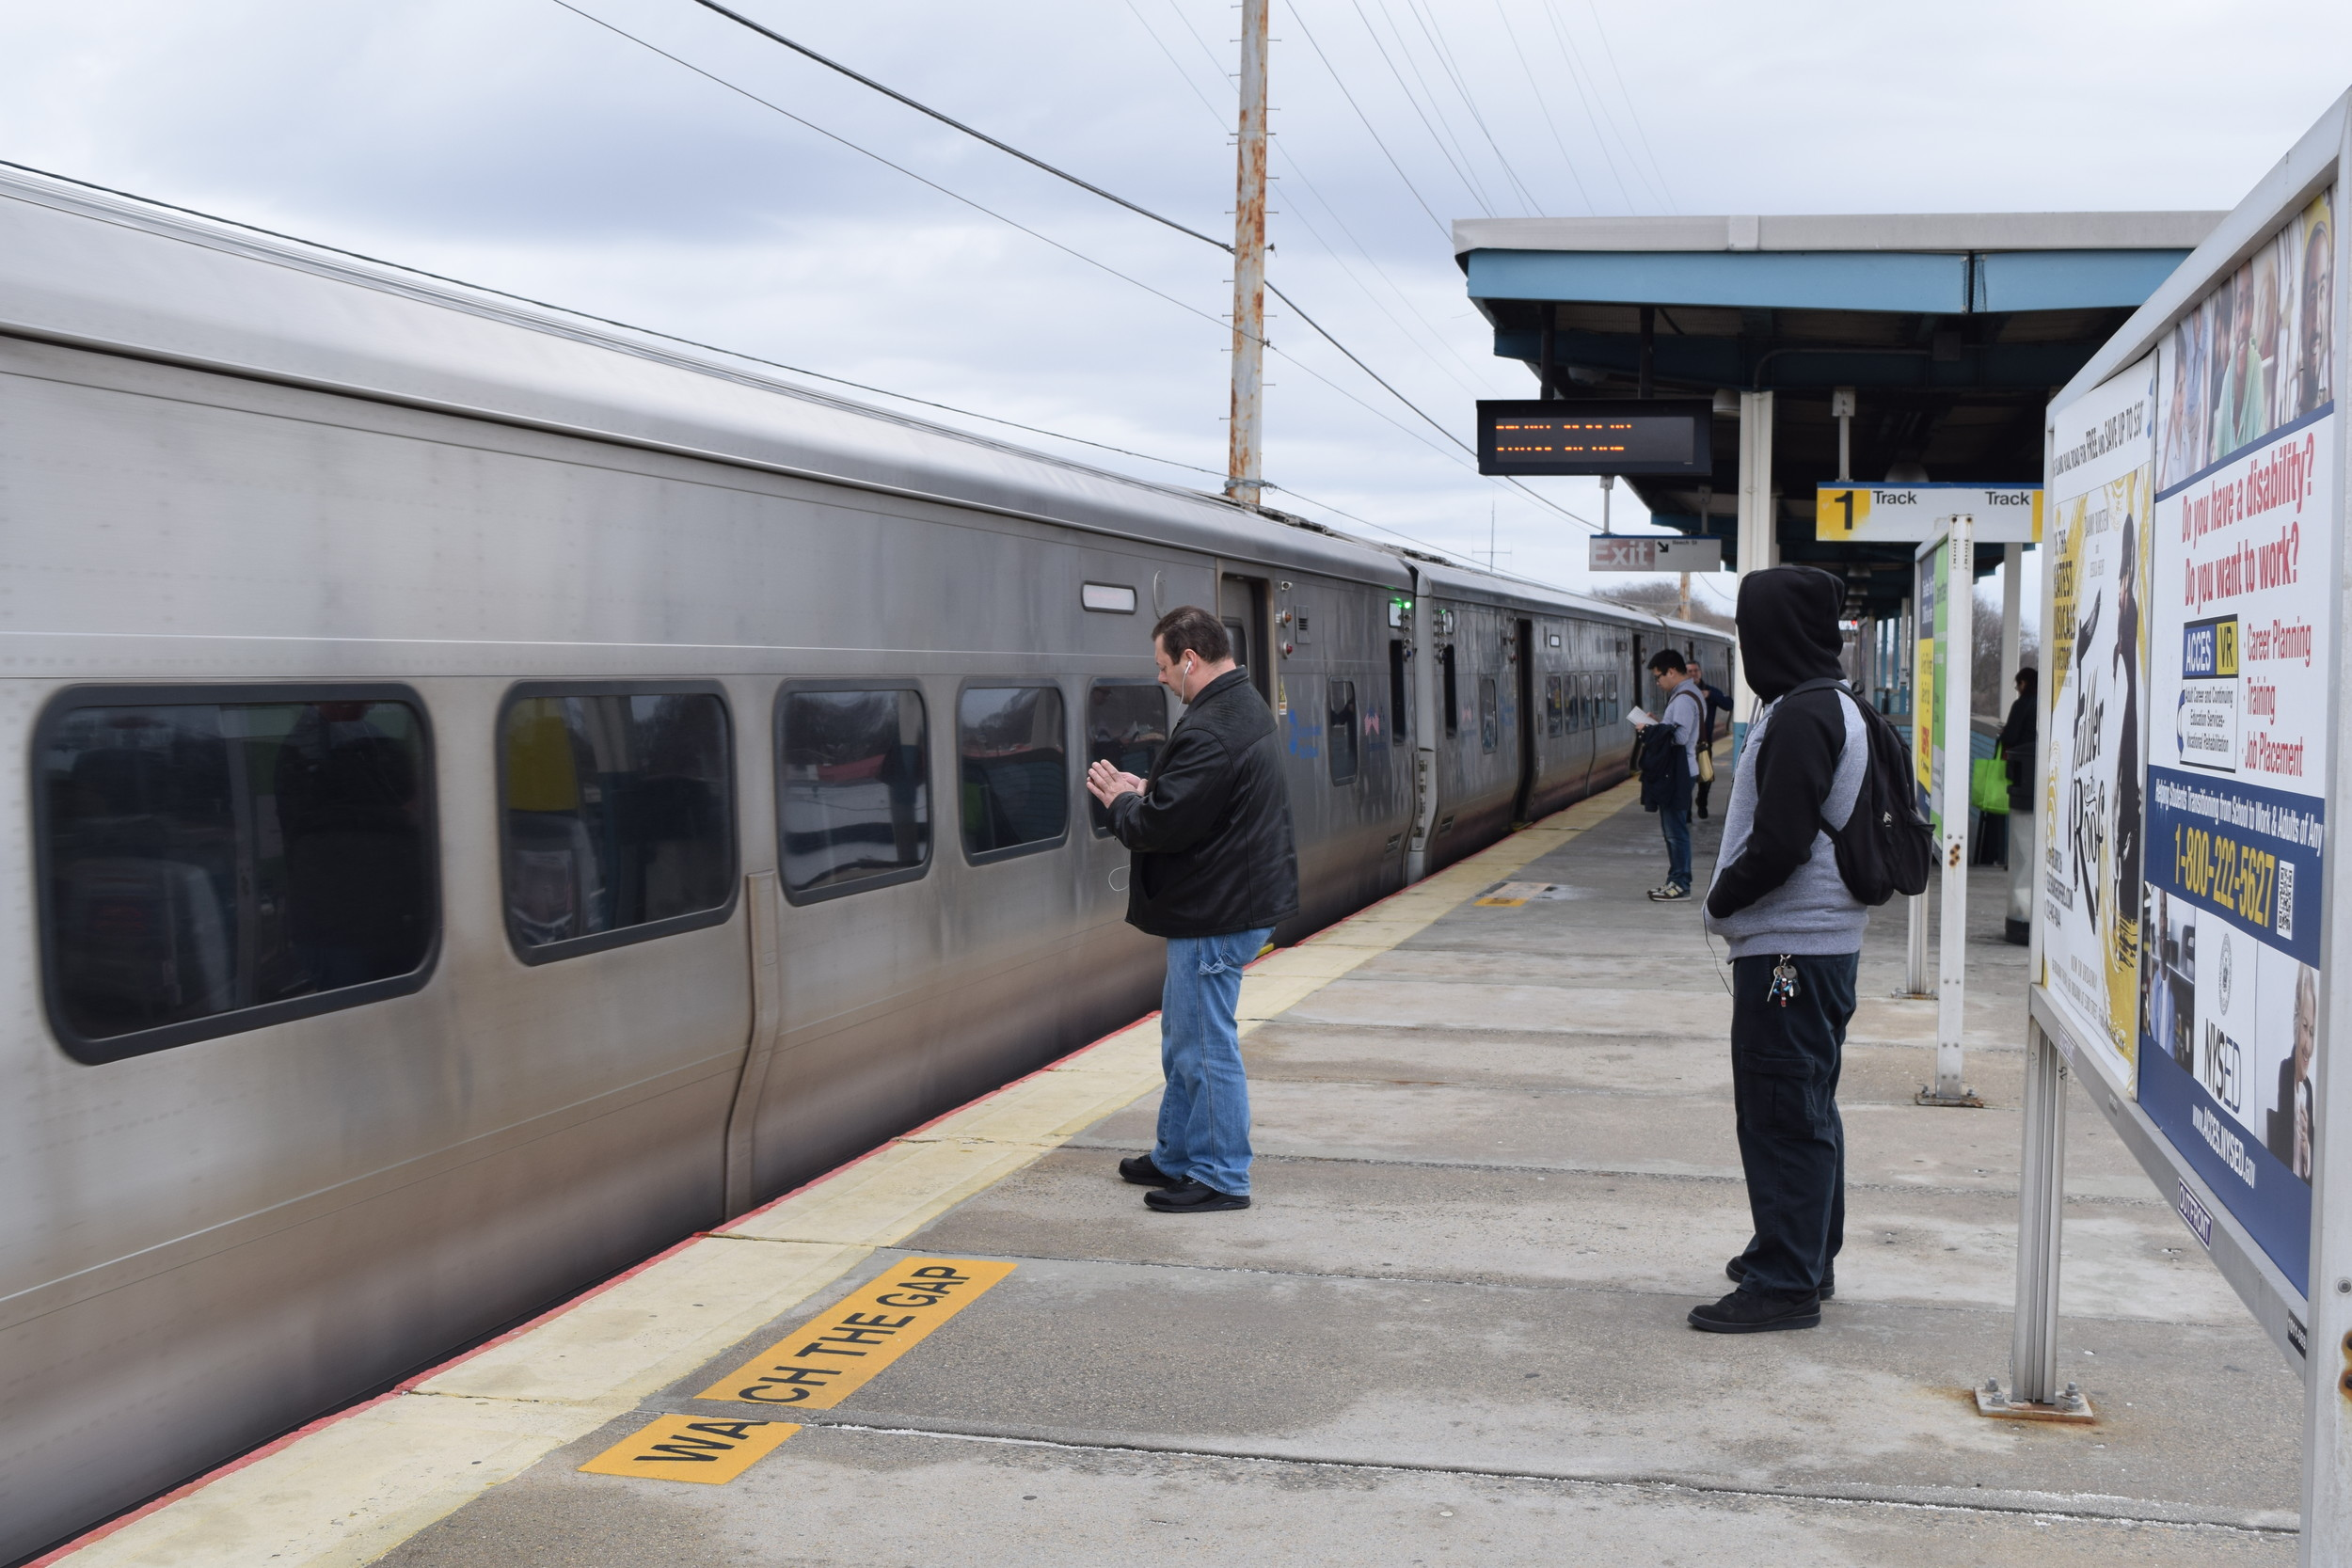 Some Wantagh commuters said last week that they were frustrated by train delays.